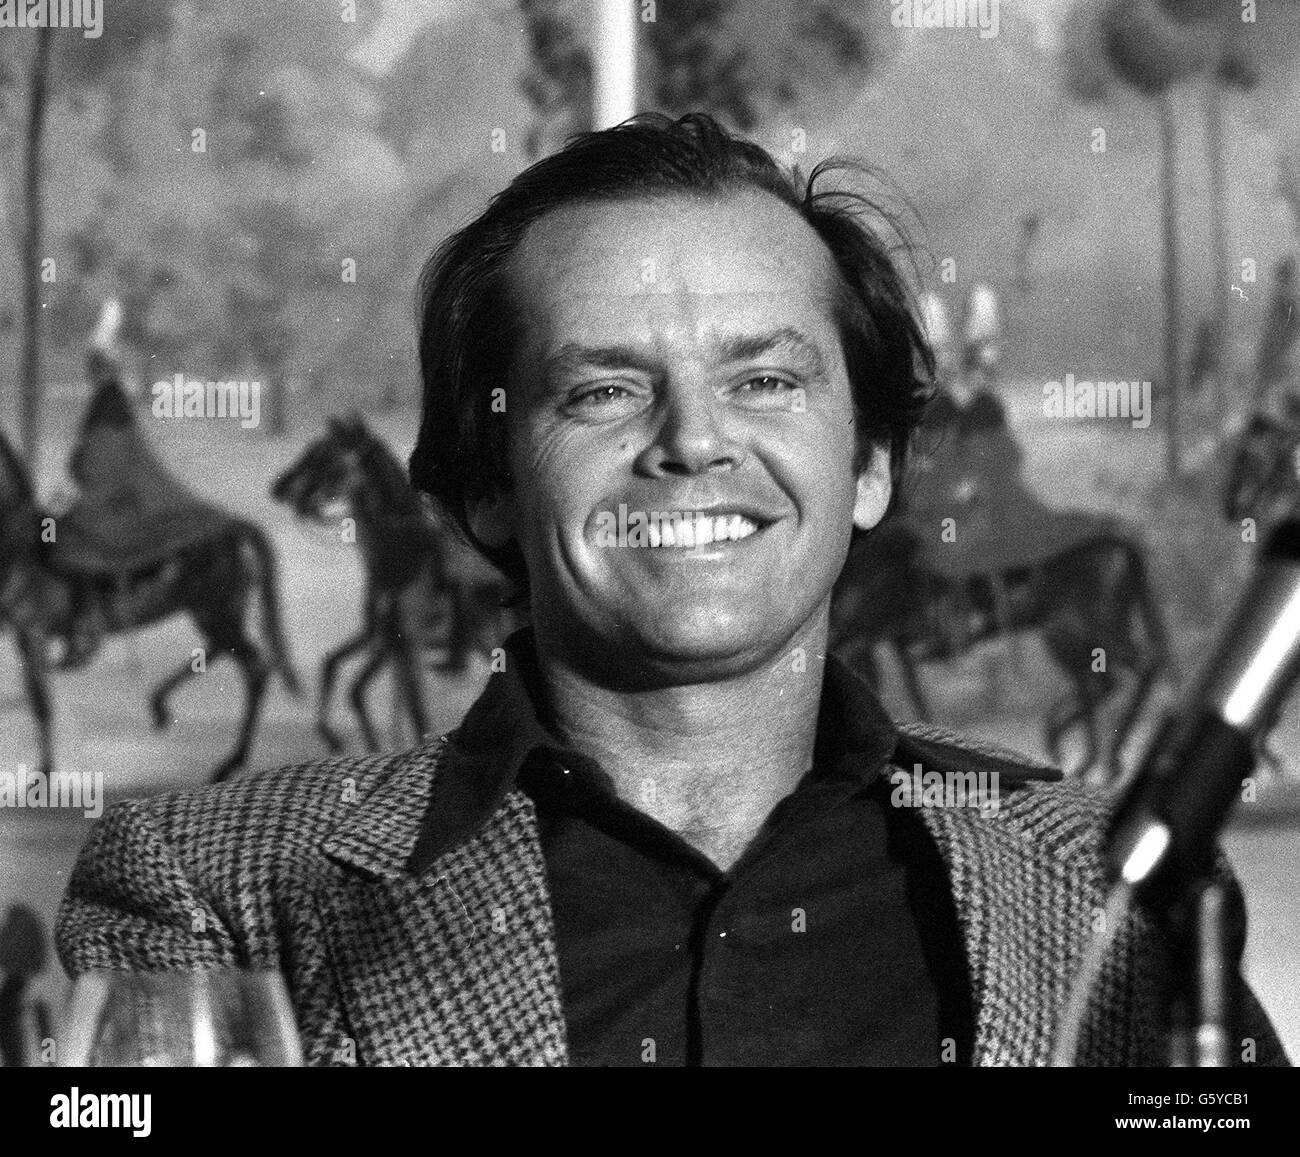 Jack Nicholson at press conference - Stock Image